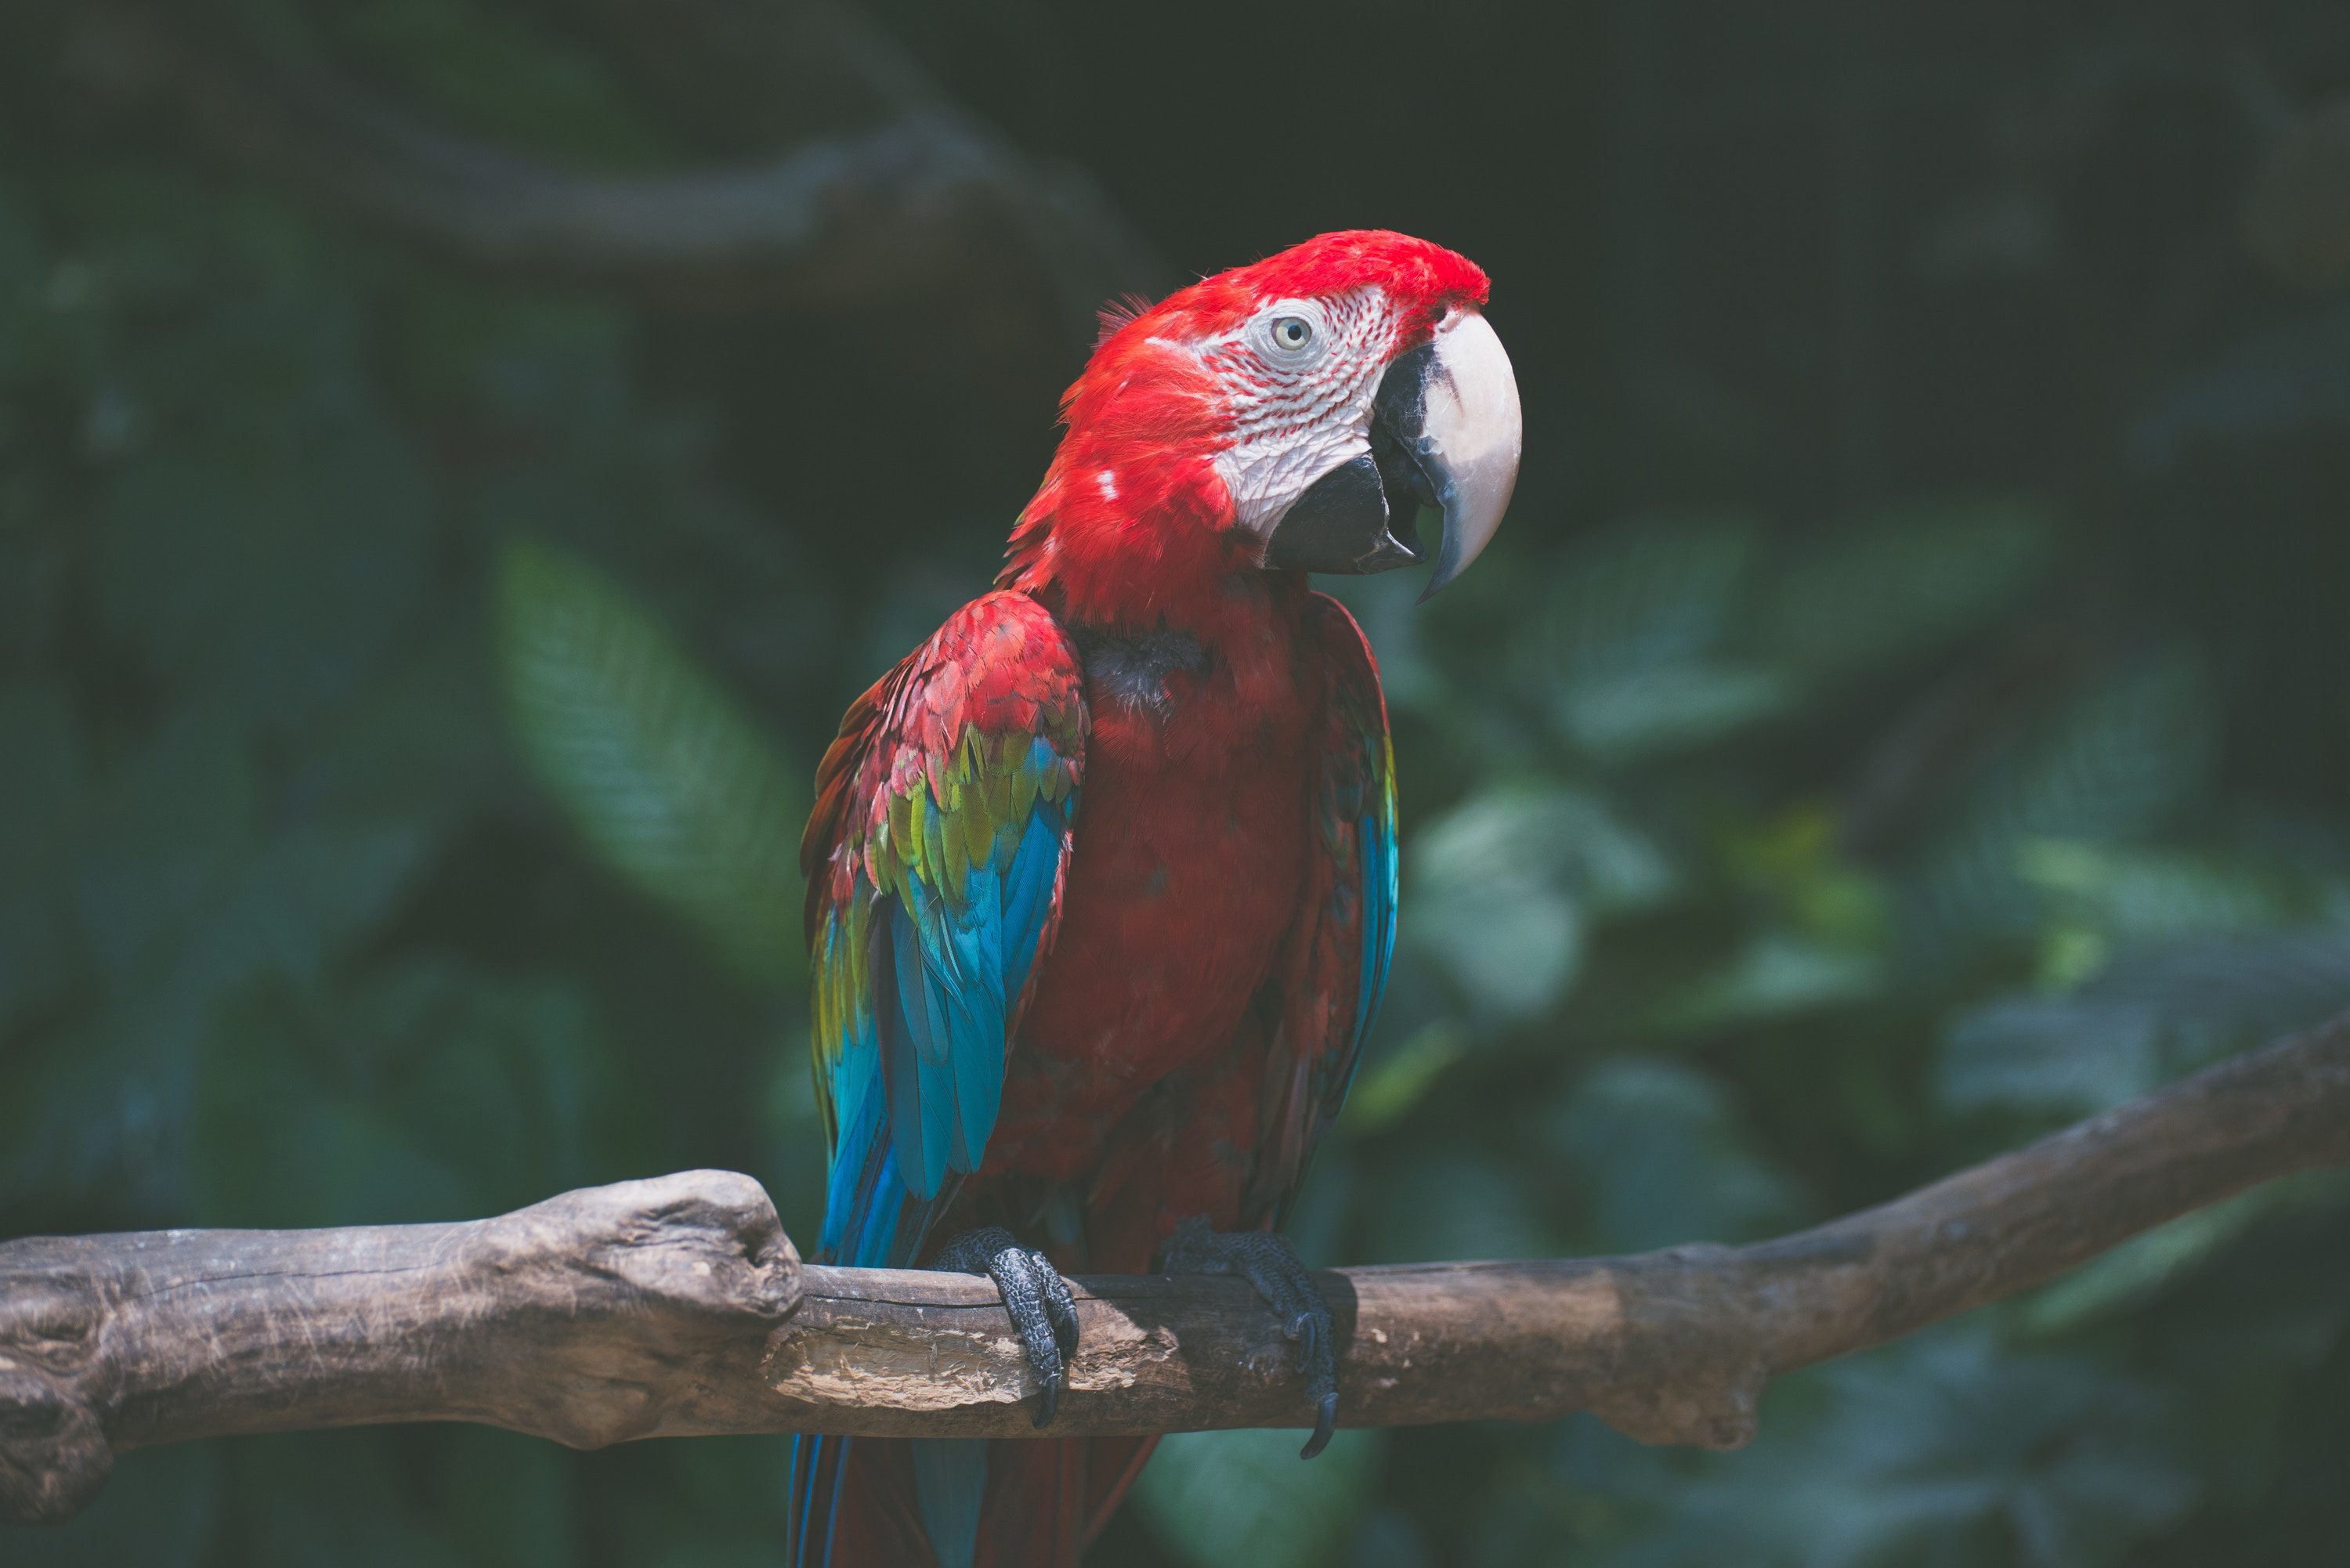 88503 download wallpaper Animals, Parrots, Macaw, Bird, Branch screensavers and pictures for free